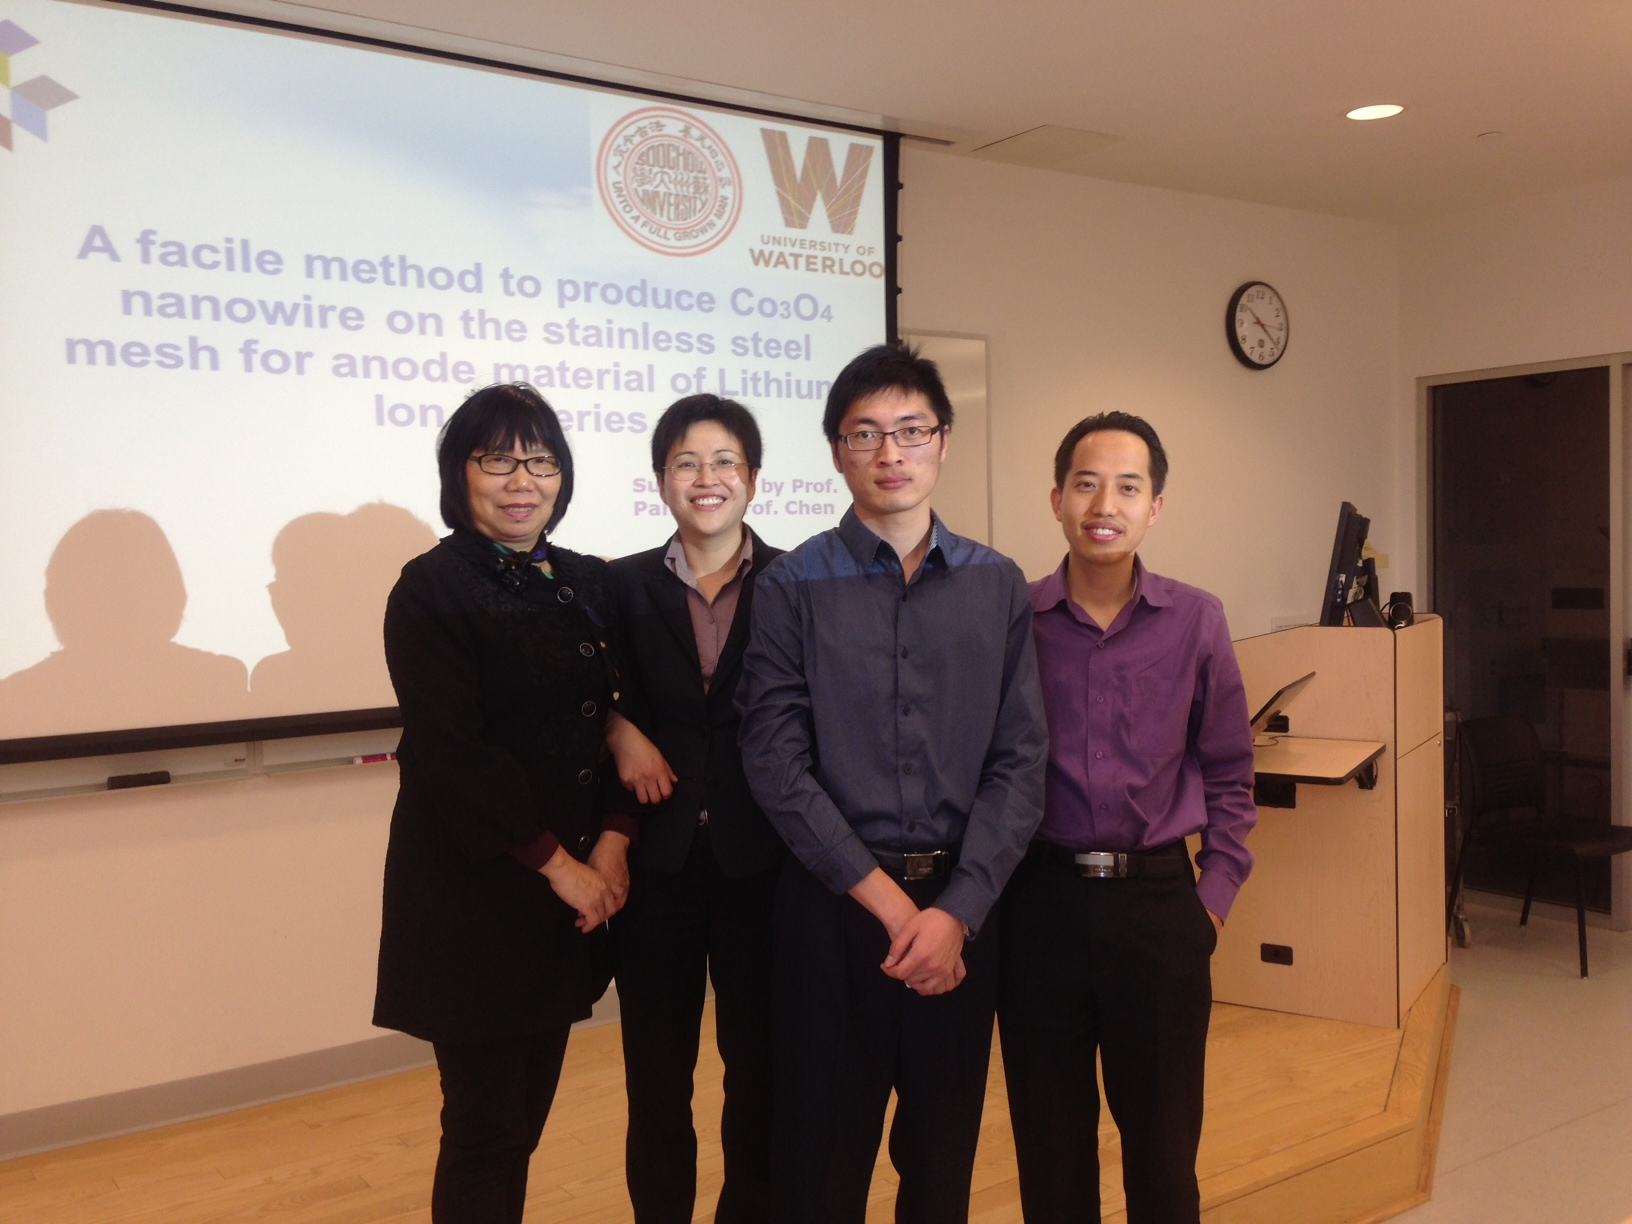 Kun Feng with Professors Pan, Yu, and Chen